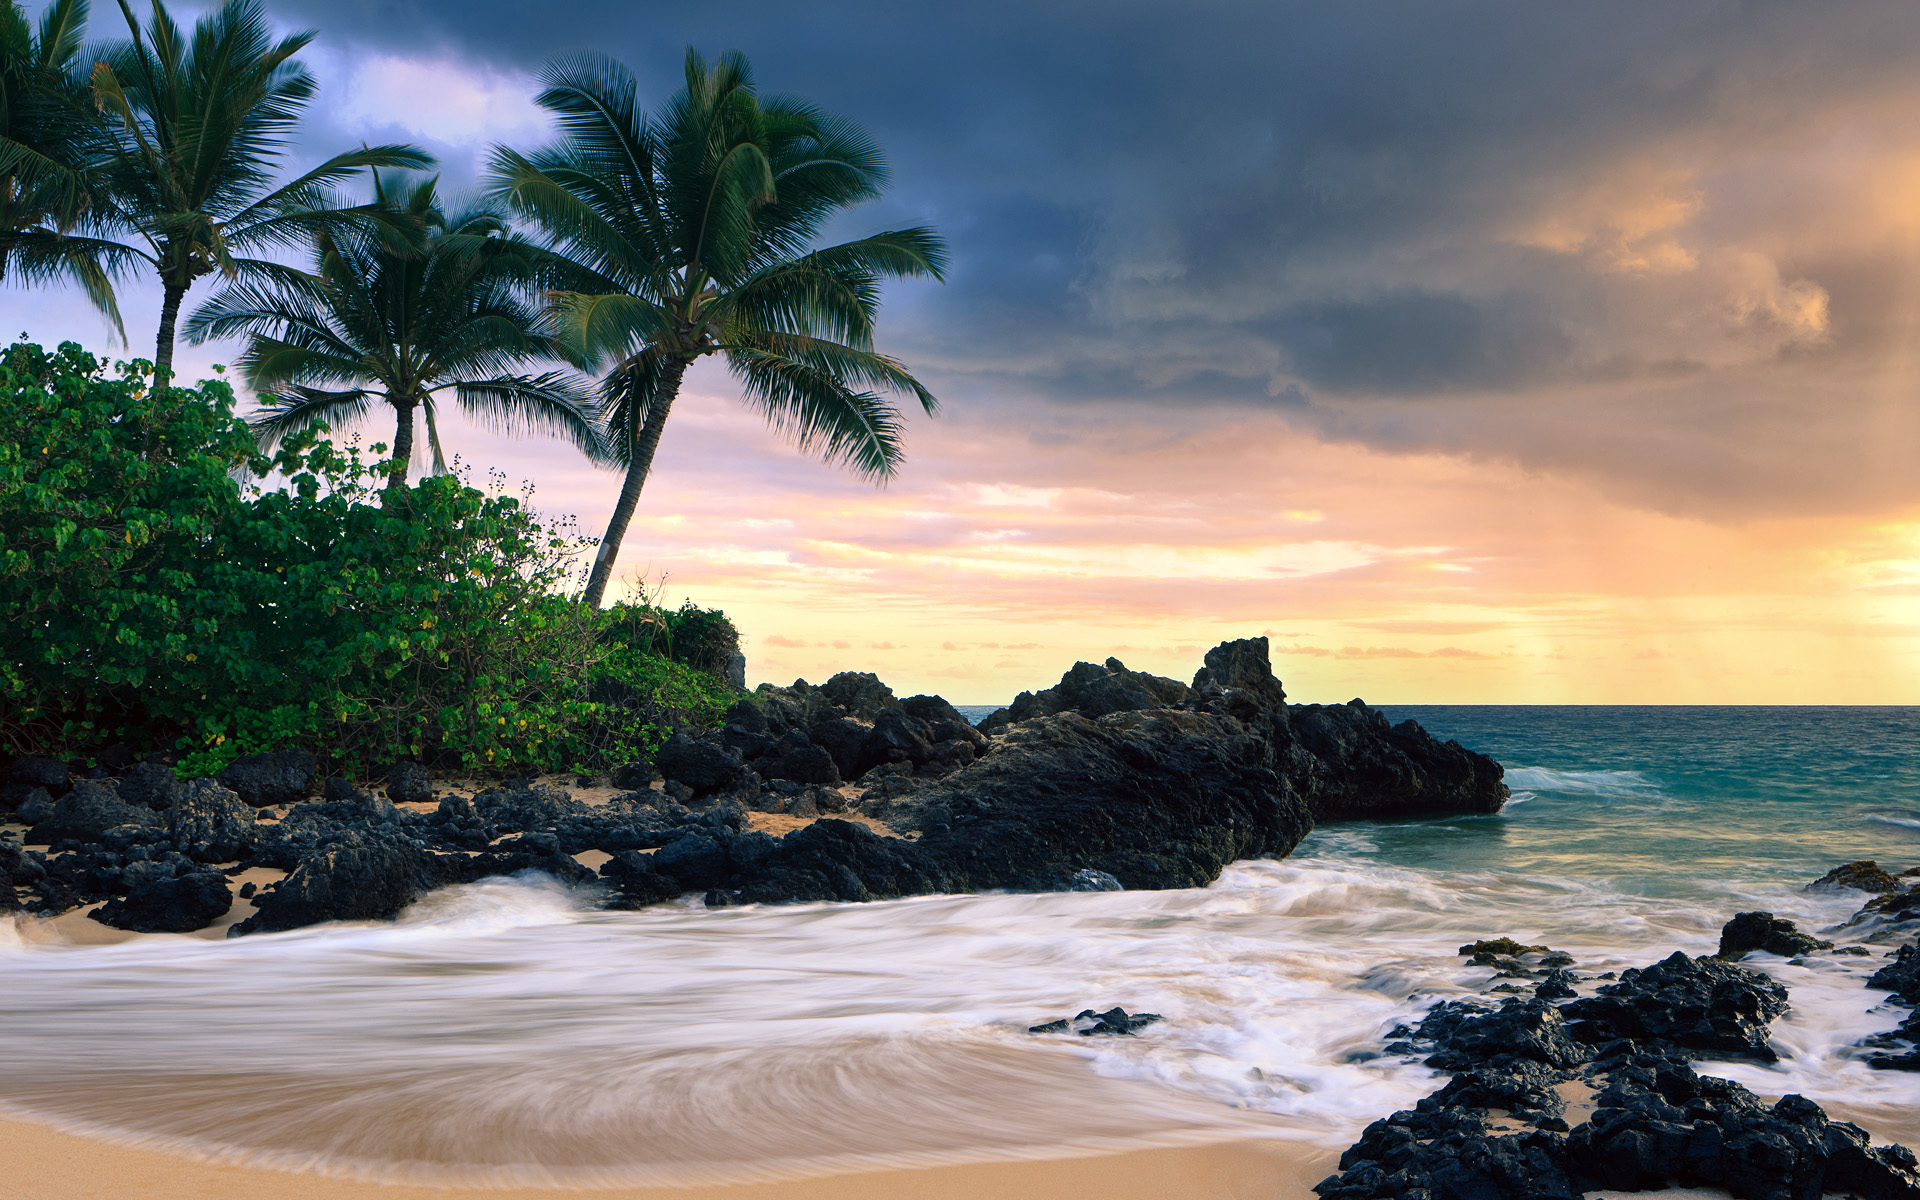 hawaii wallpaper free hd - photo #13